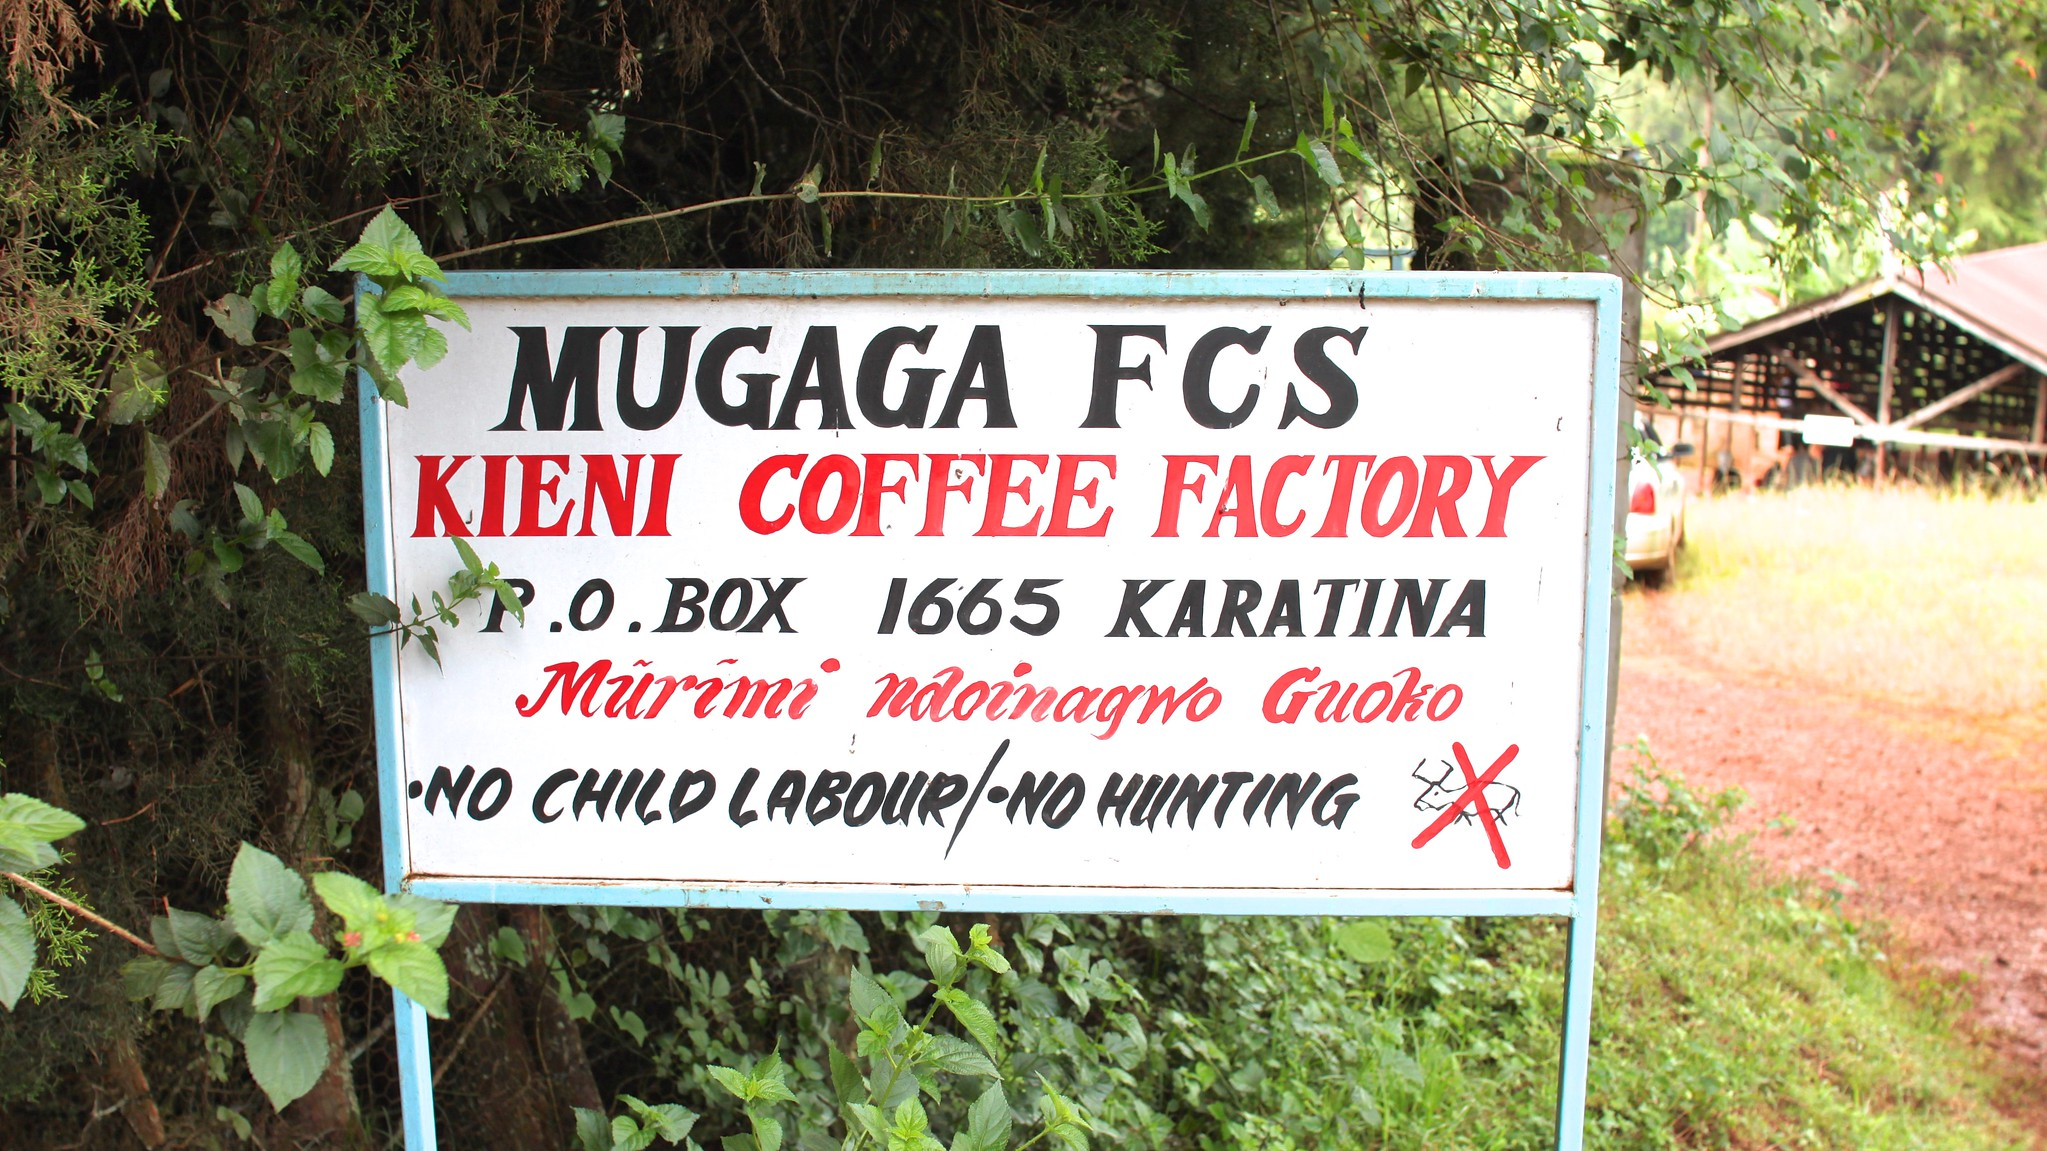 Mugaga society where Kieni is one of five members.